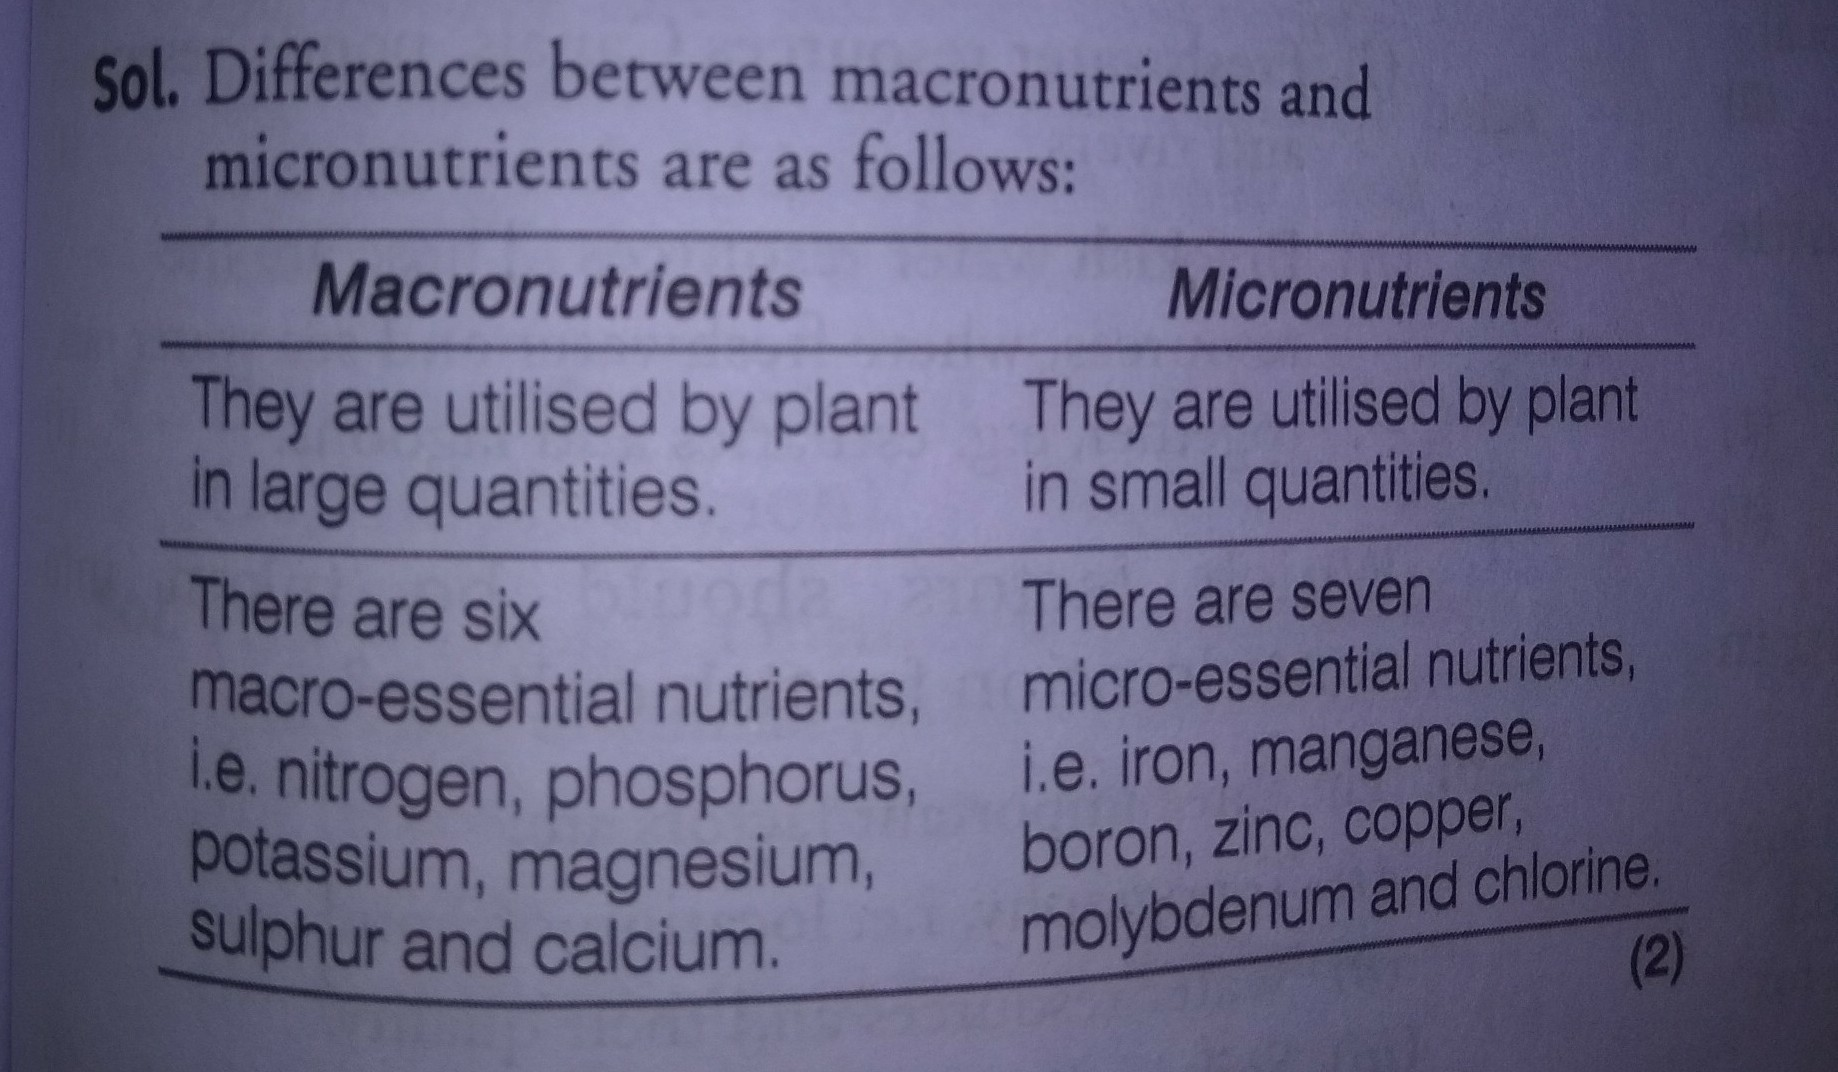 A Distinguish Between Macronutrients And Micronutrients On The Basis Of I Their Functions Ii Brainly In